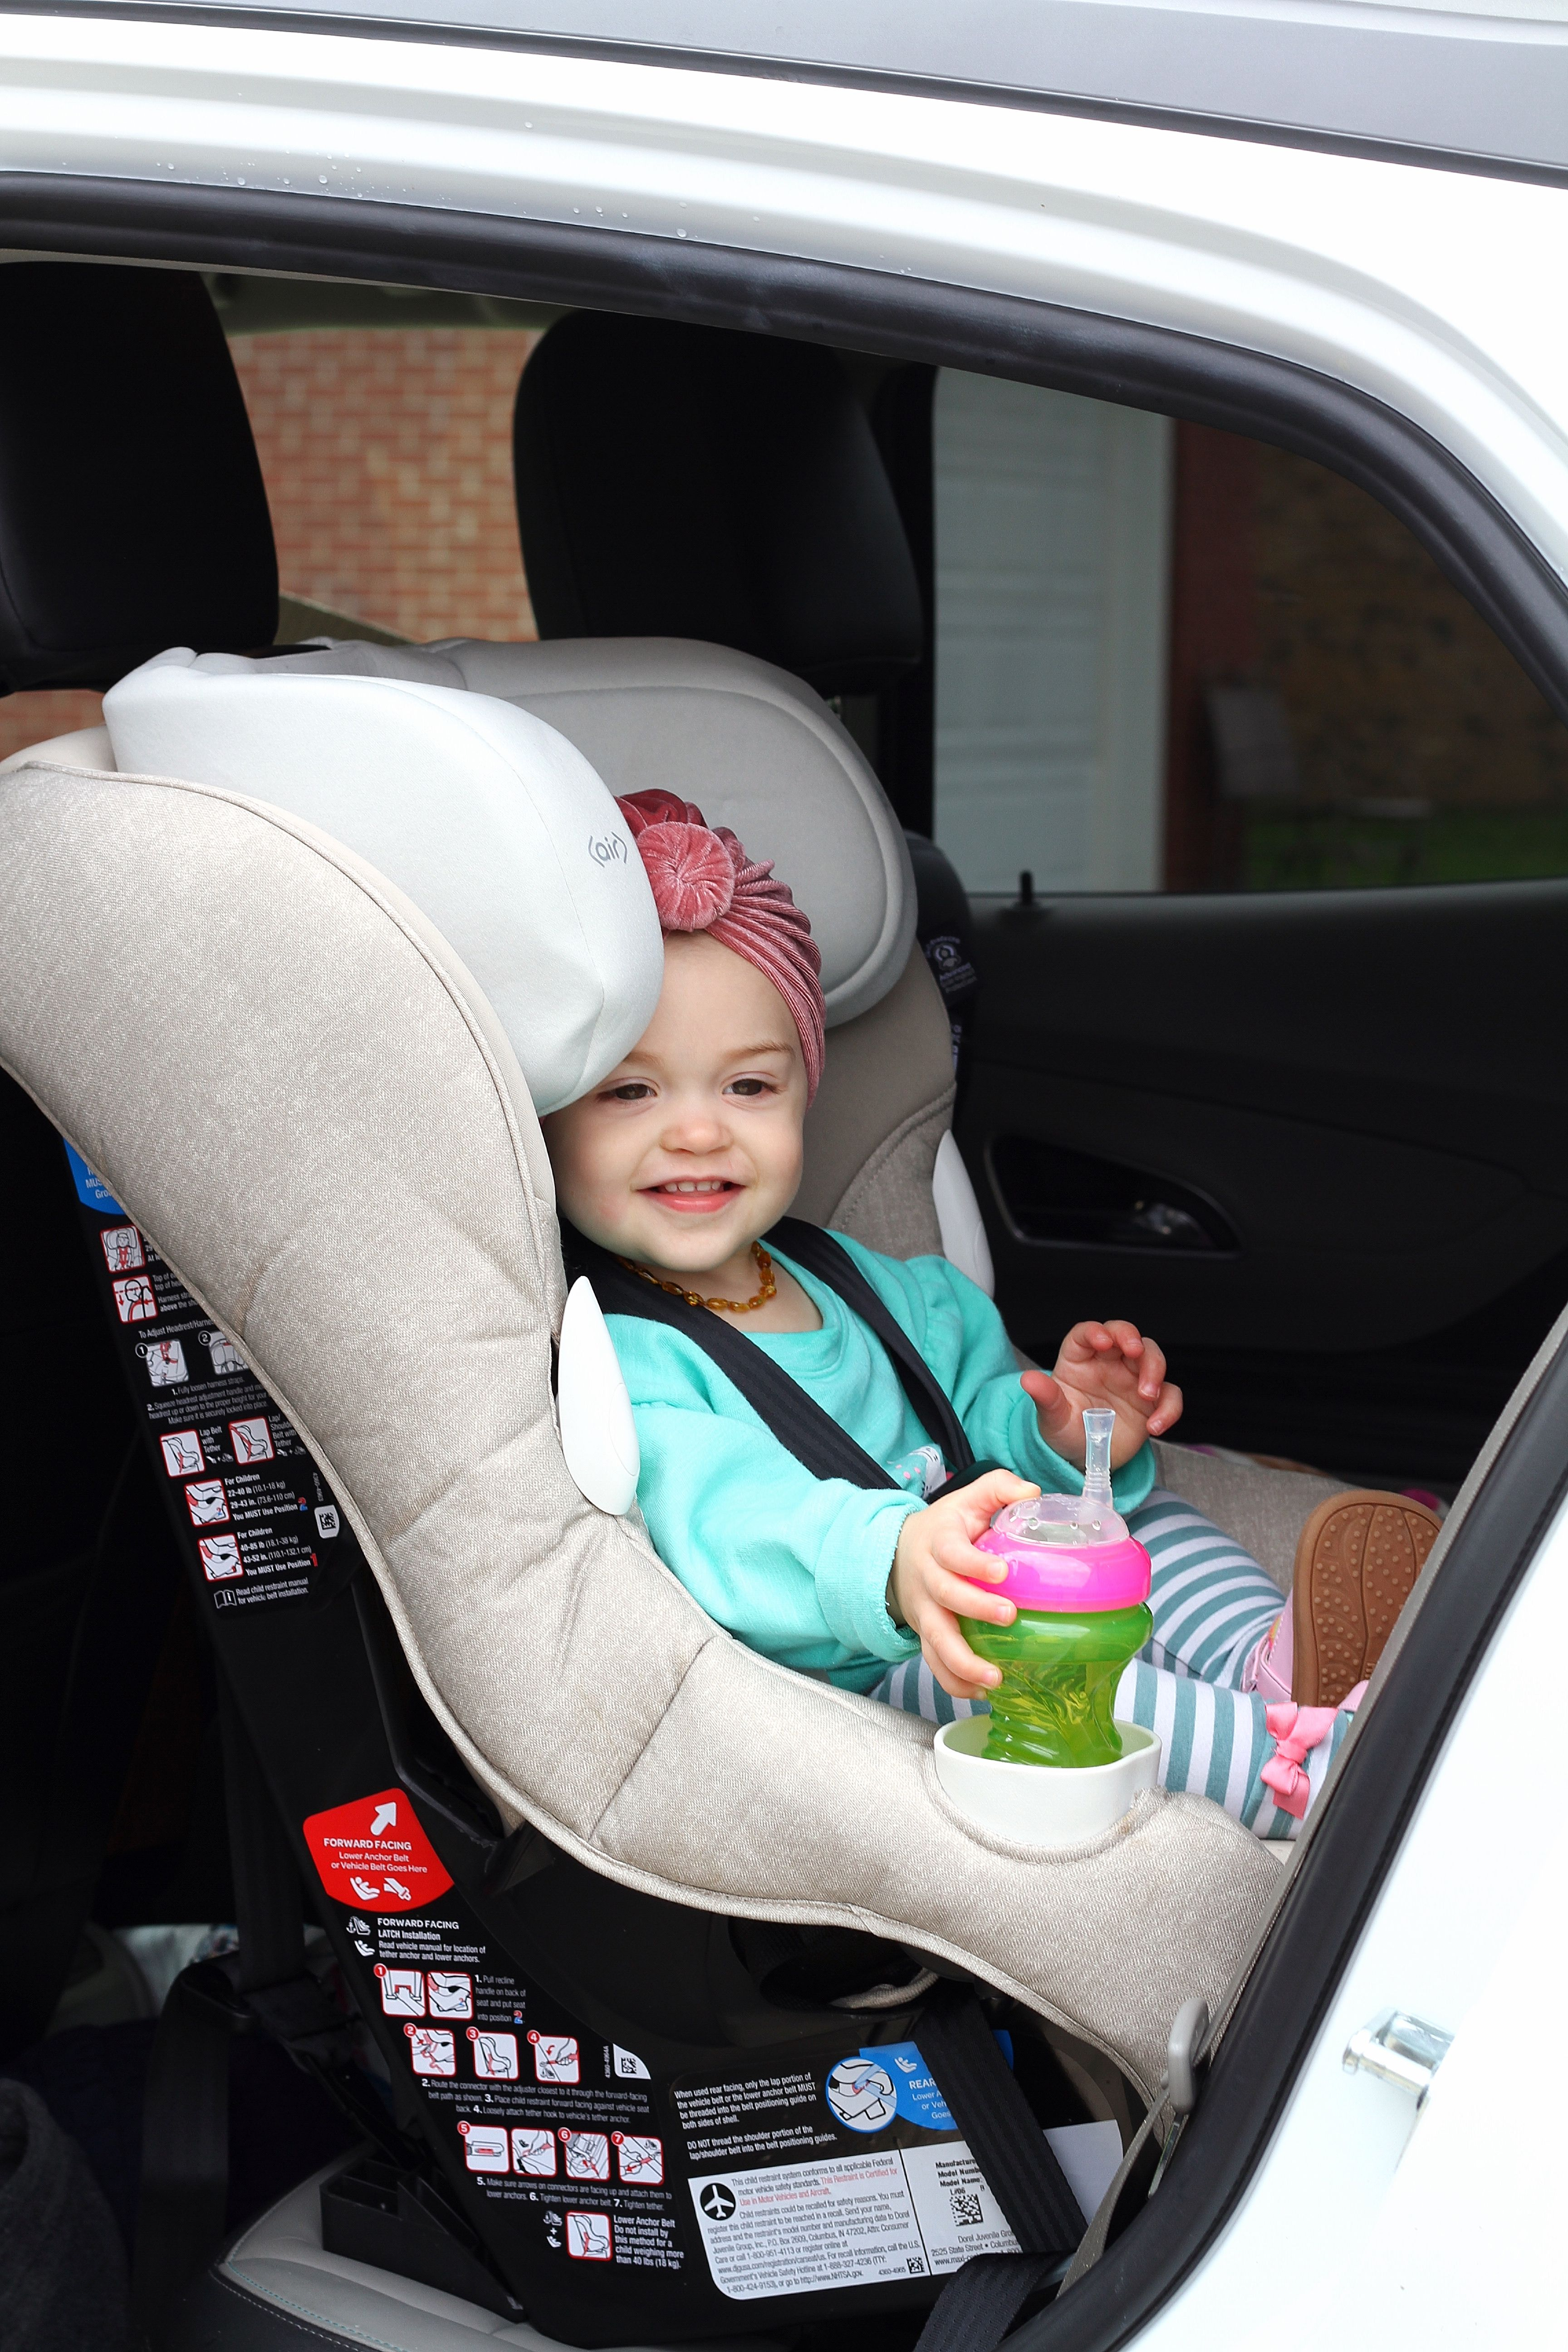 Best Toddler Car seat Brand is by far Maxi Cosi!! Cora